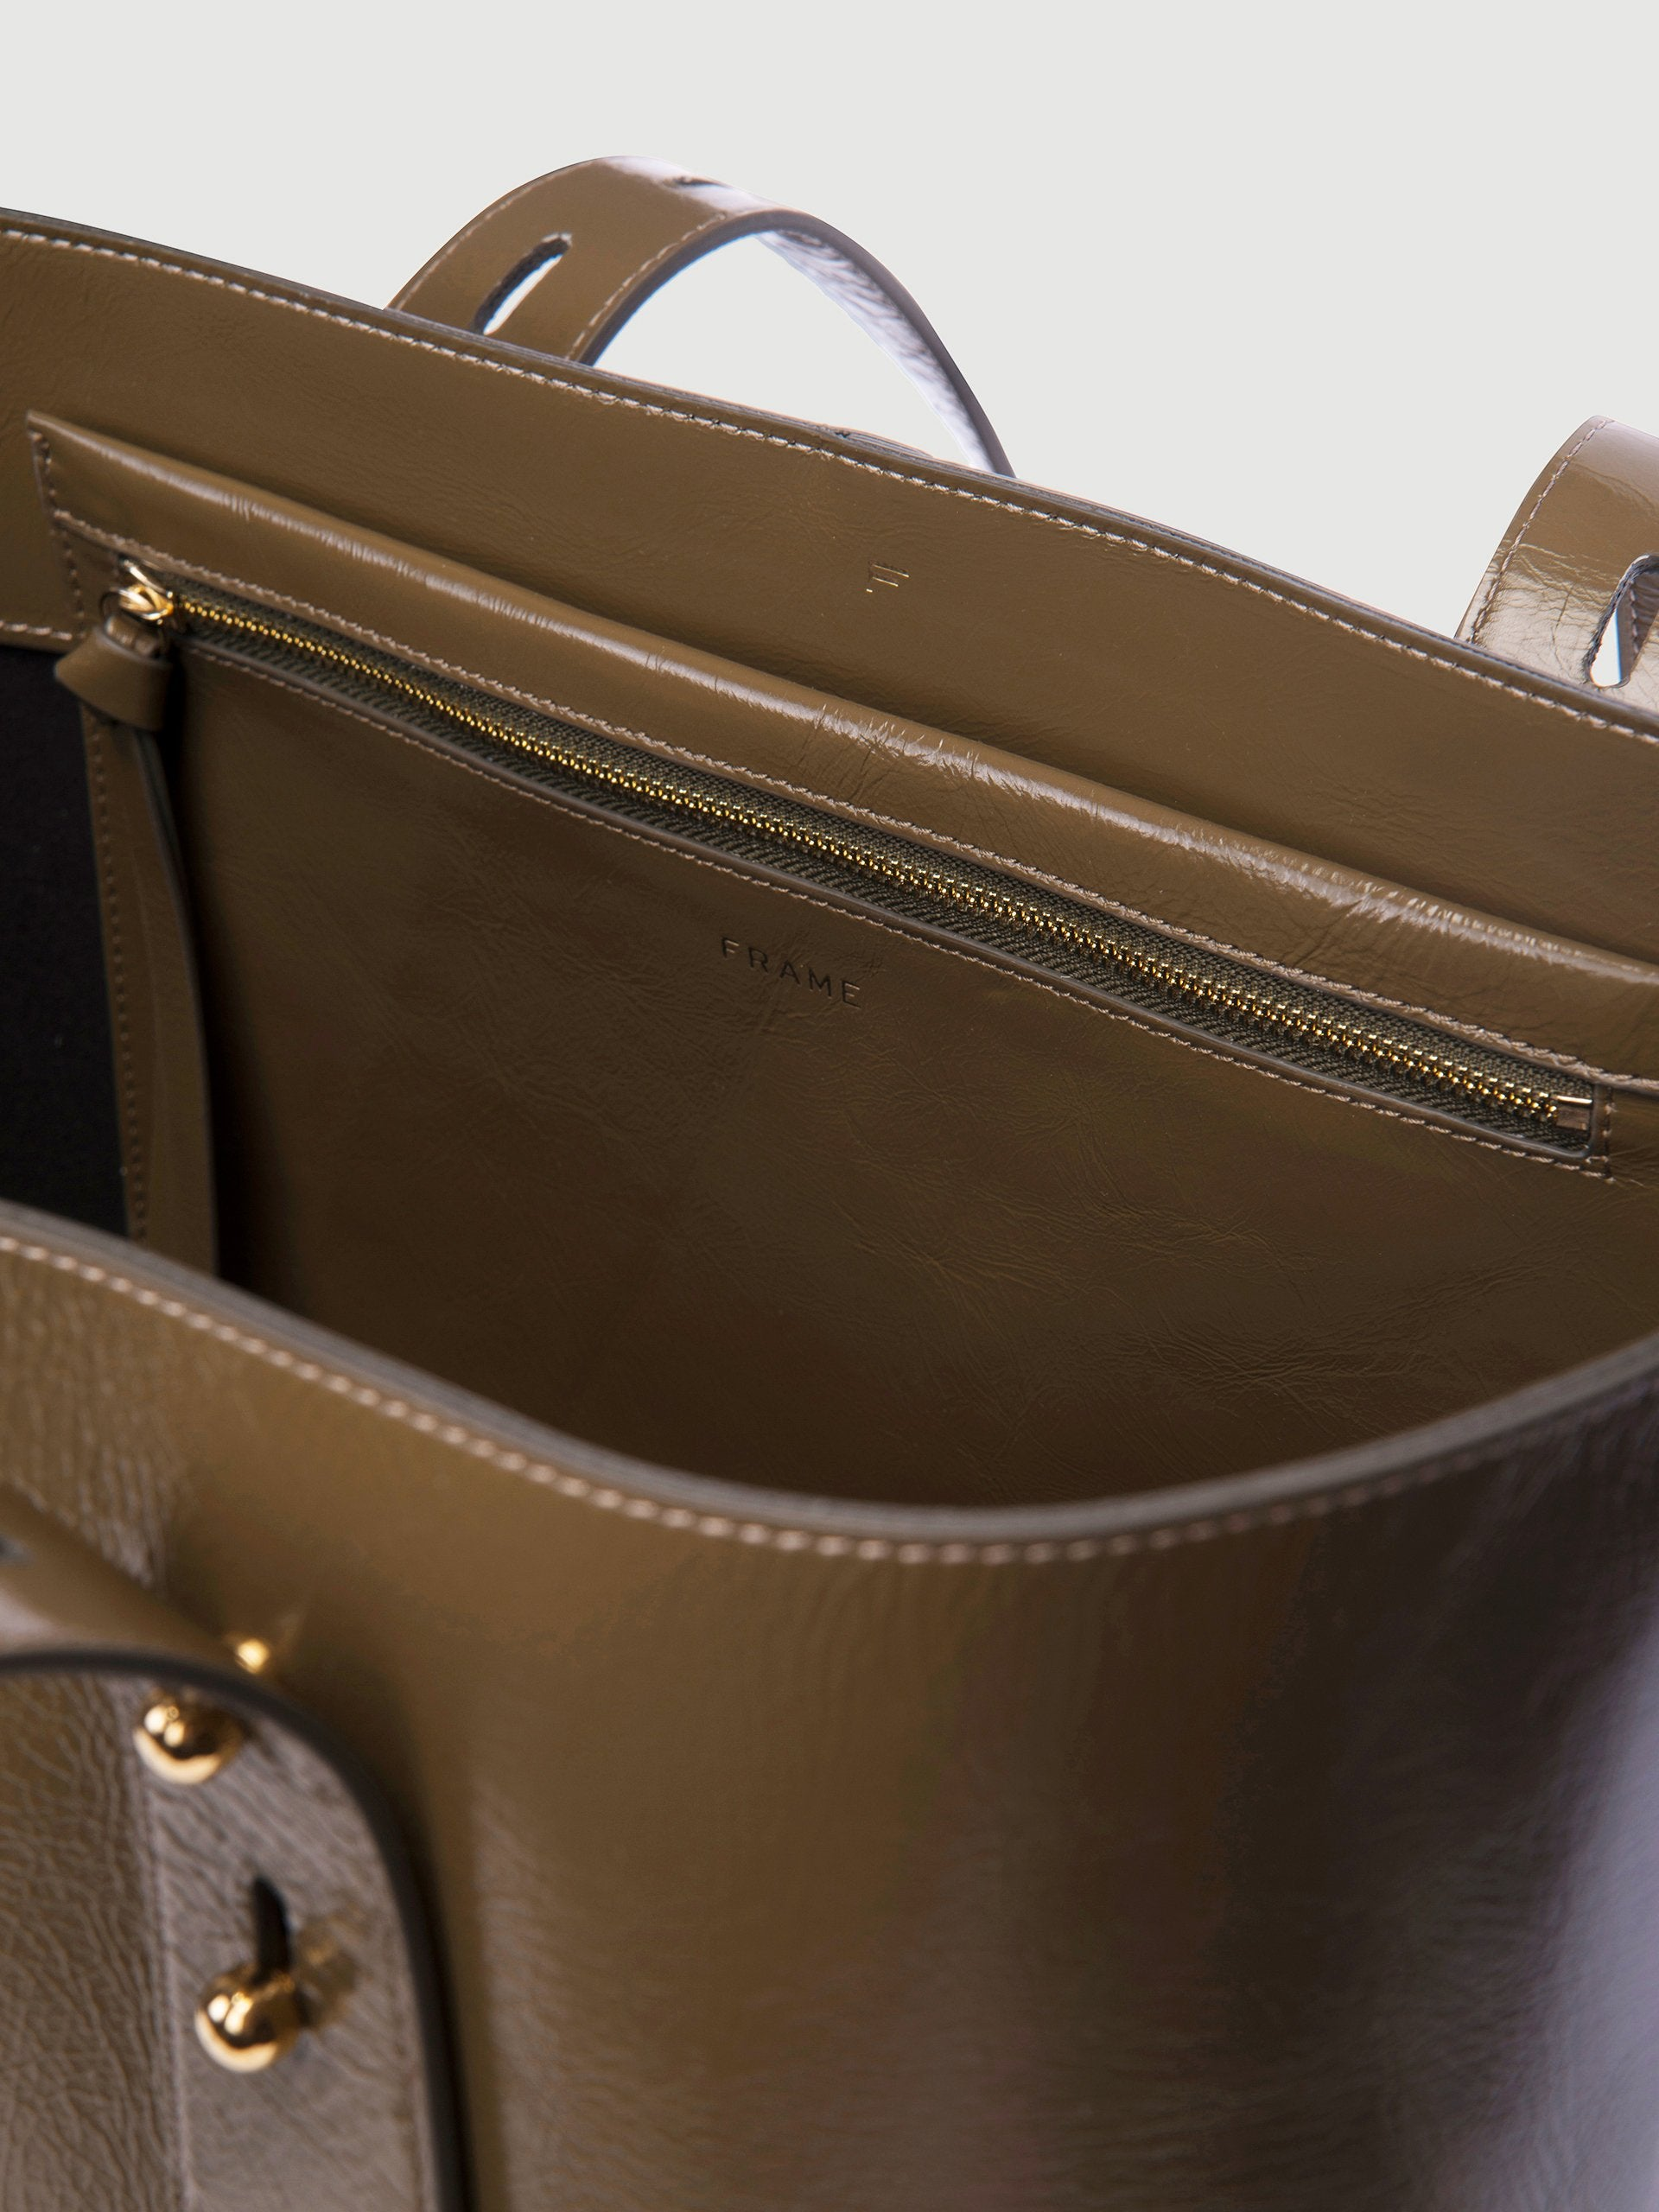 handbag detail view